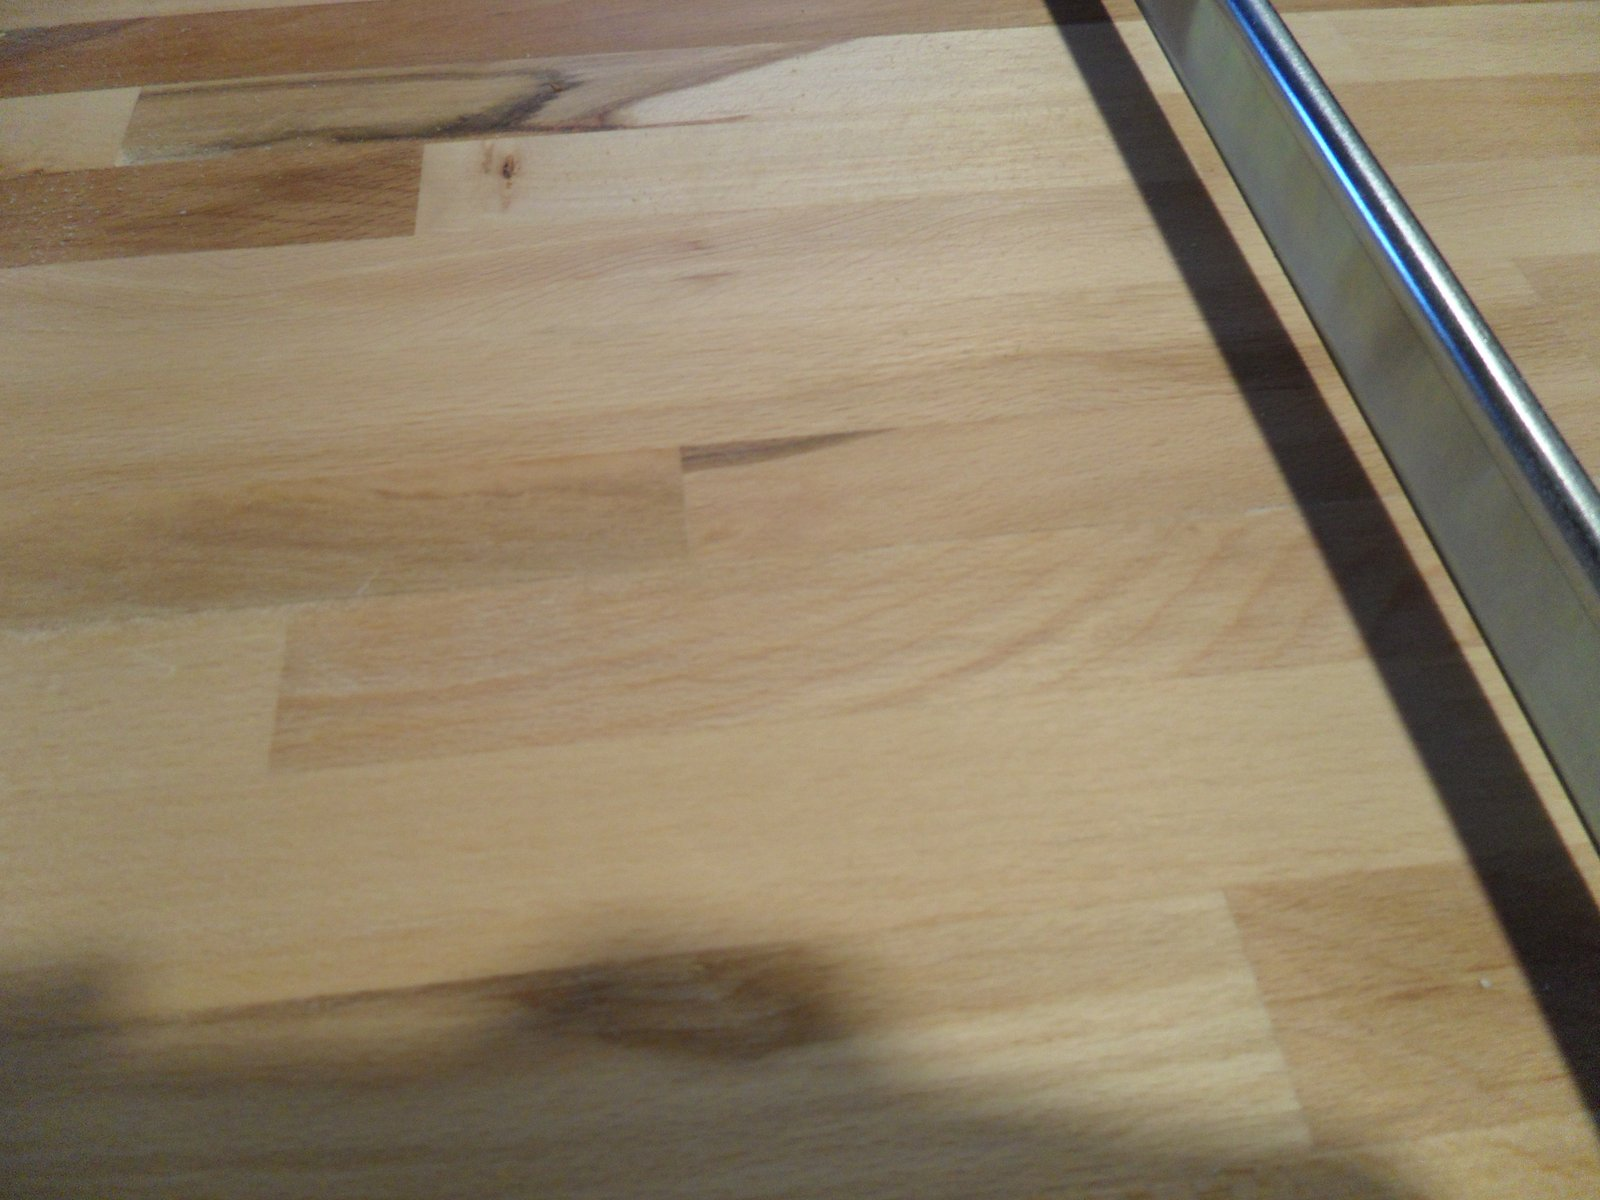 Be Vegantastic Home Edition Adventures In Diy Joining Two Ikea Numerar Butcher Blocks Into One Large Countertop